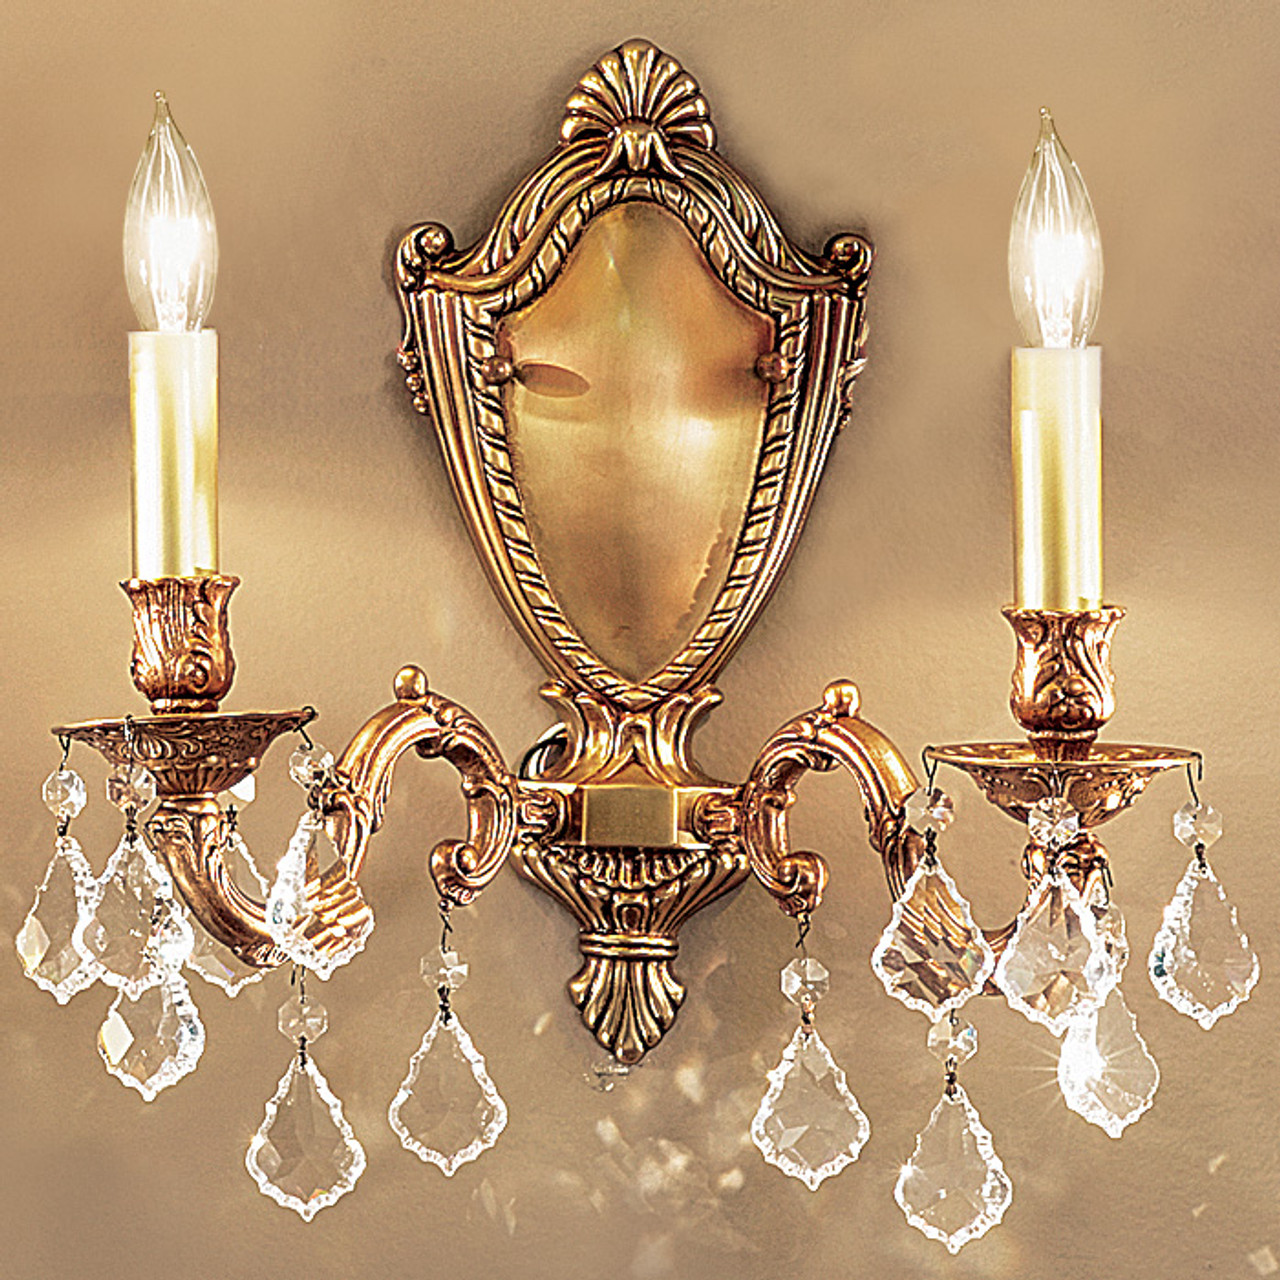 Image of: Classic Lighting 57372 Fg Cbk Chateau Crystal Wall Sconce In French Gold Imported From Spain At Clw Lighting